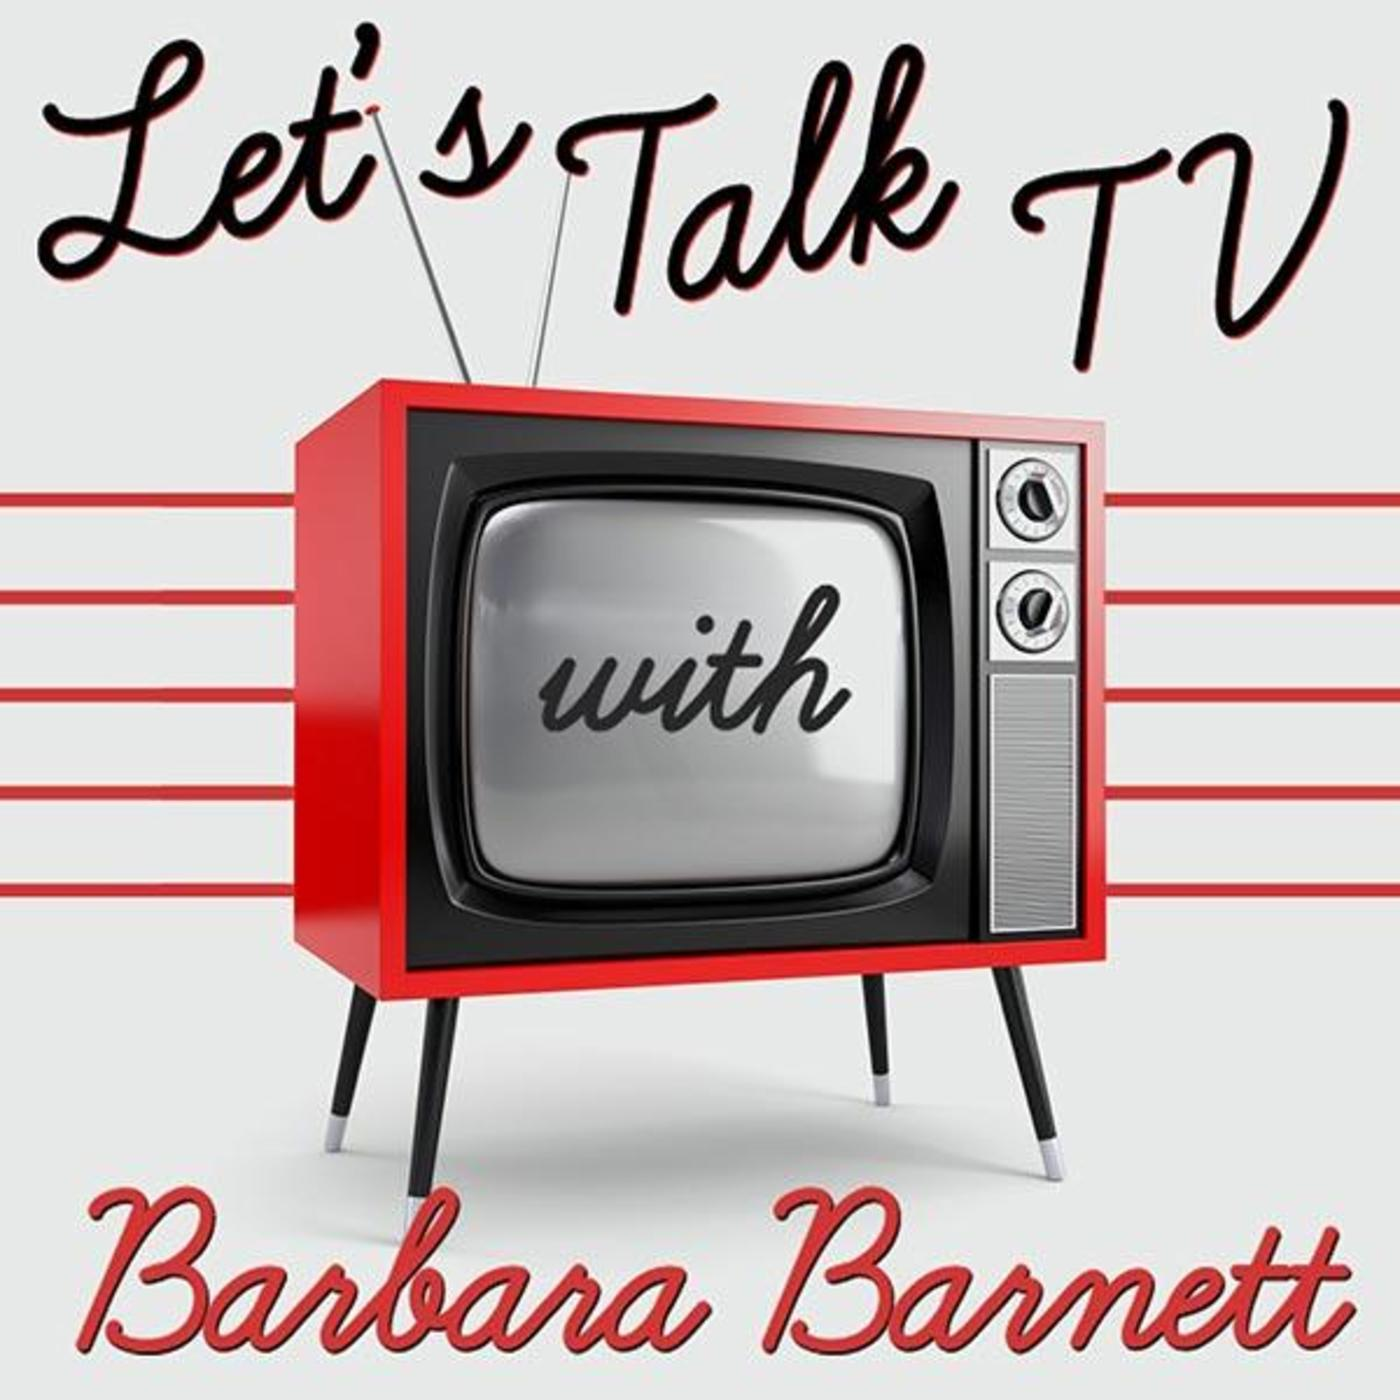 Let's Talk TV LIVE with Barbara Barnett